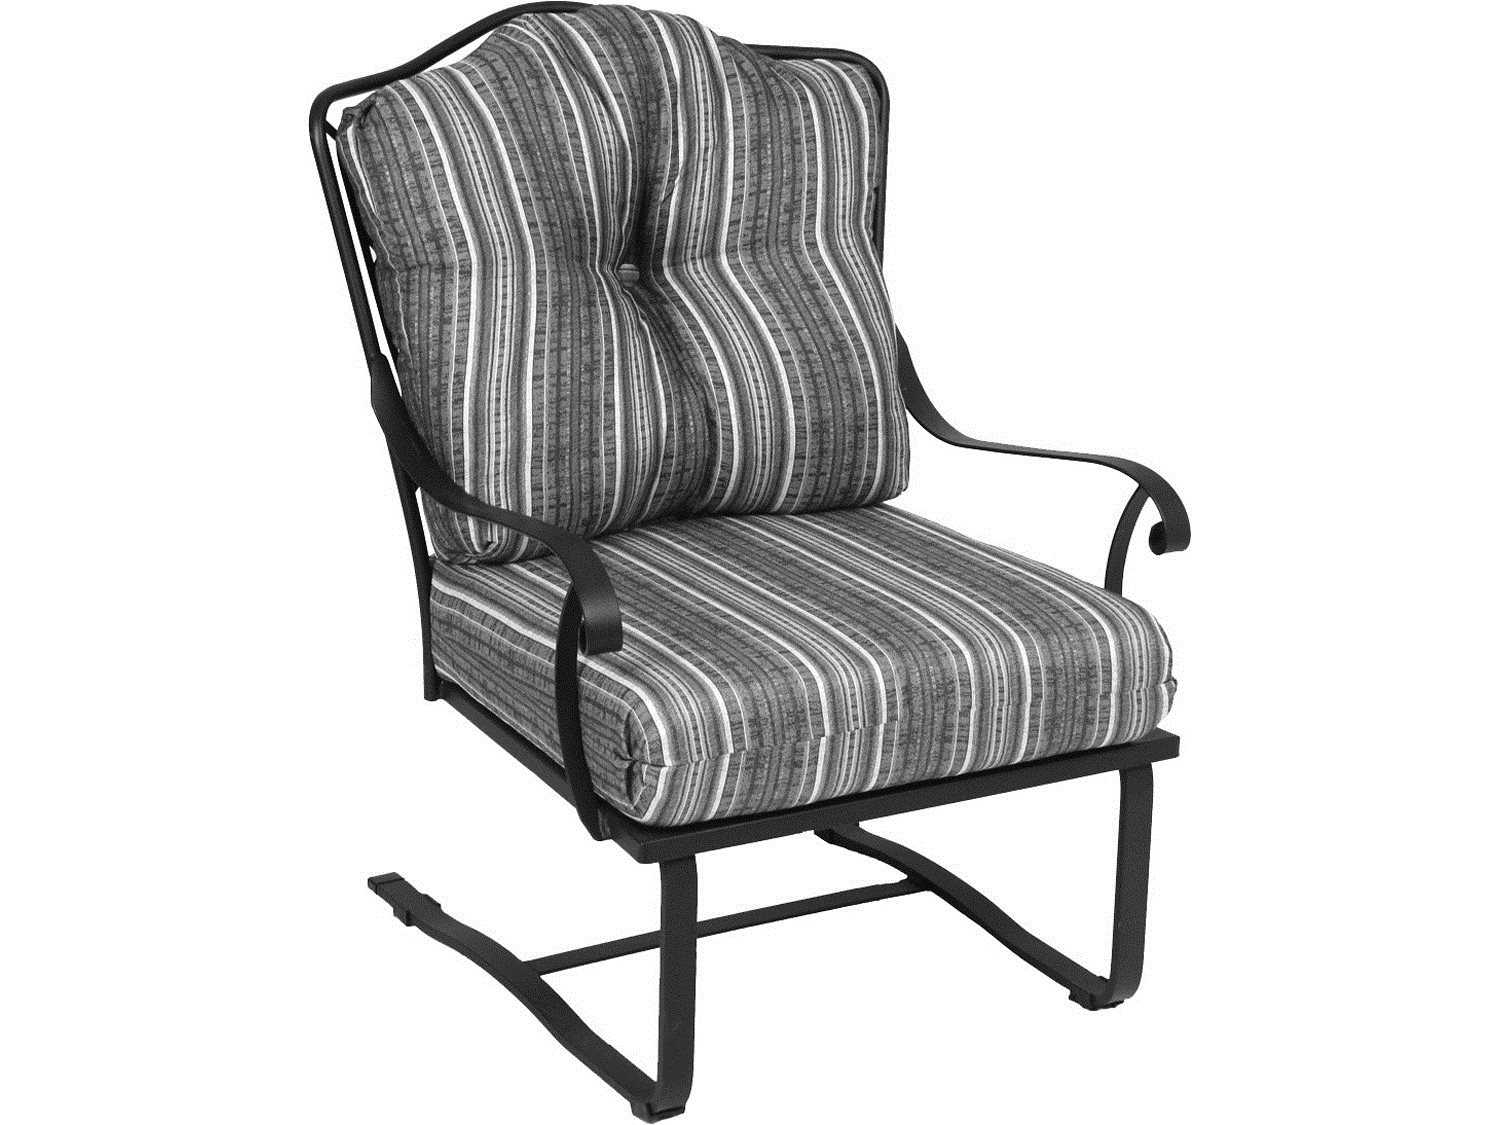 Meadowcraft Coventry Spring Dining Chair Replacement